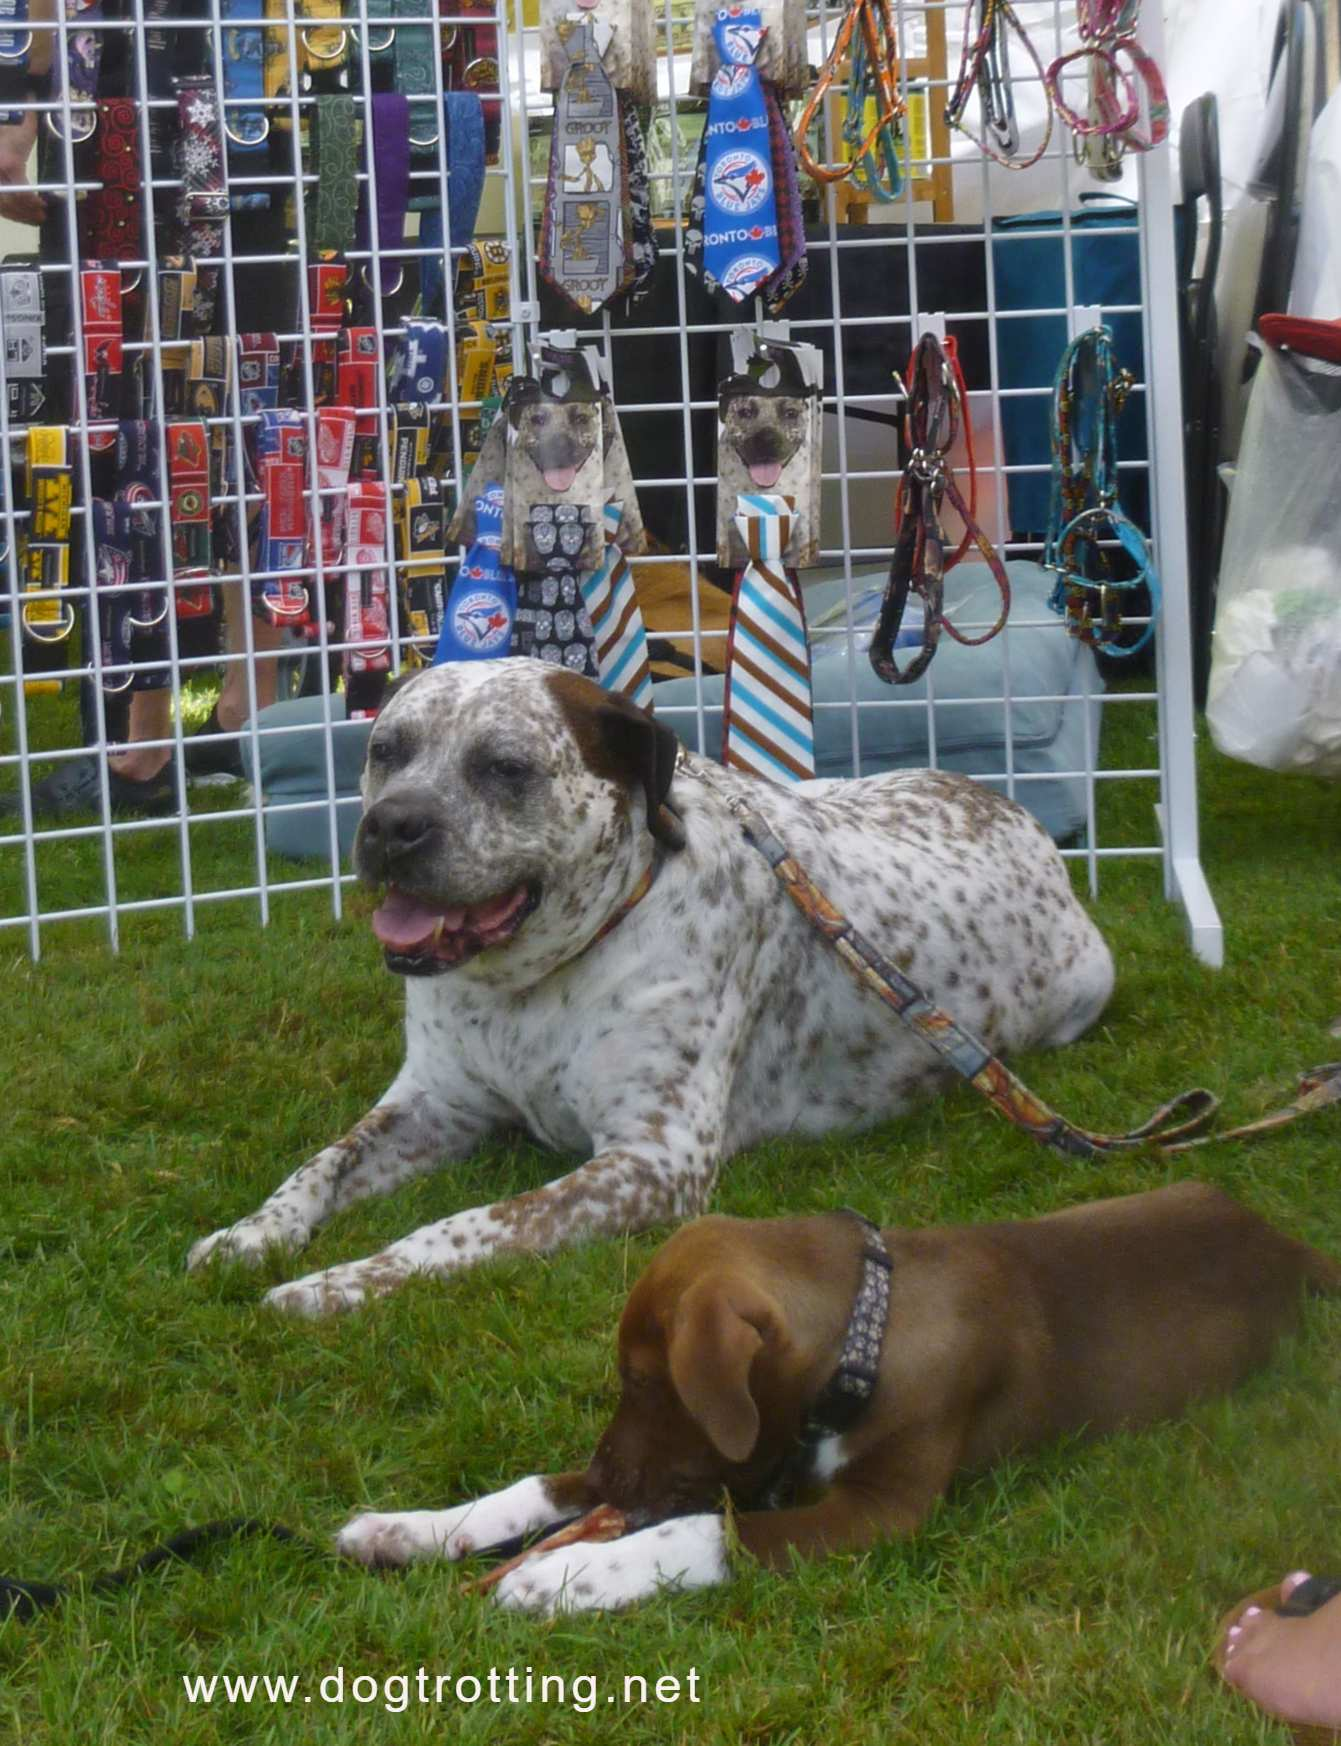 Pawlooza 2019 two dogs in front of merchandise